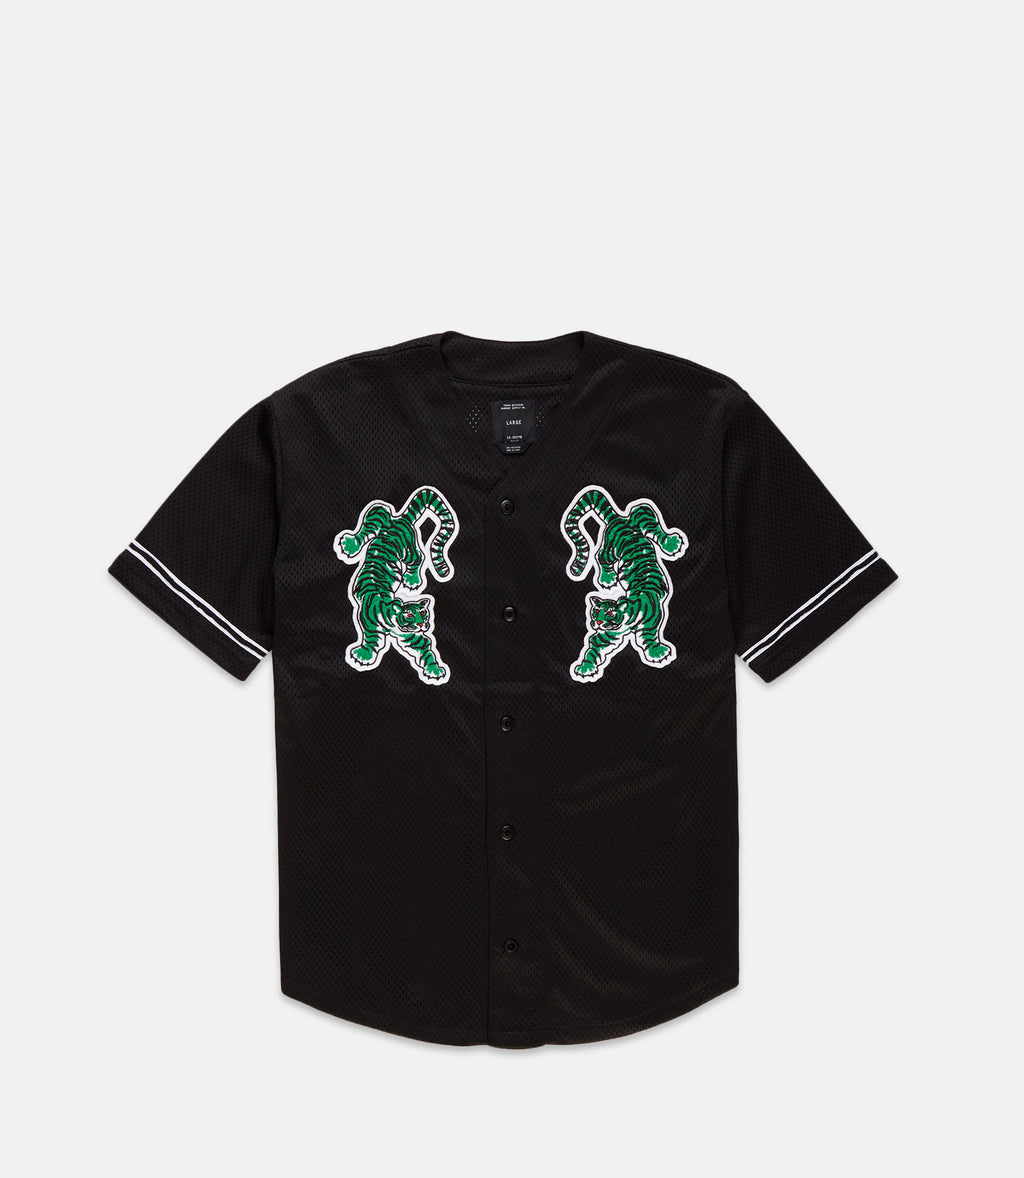 10Deep - Top Of The Chain Men's Baseball Jersey, Black